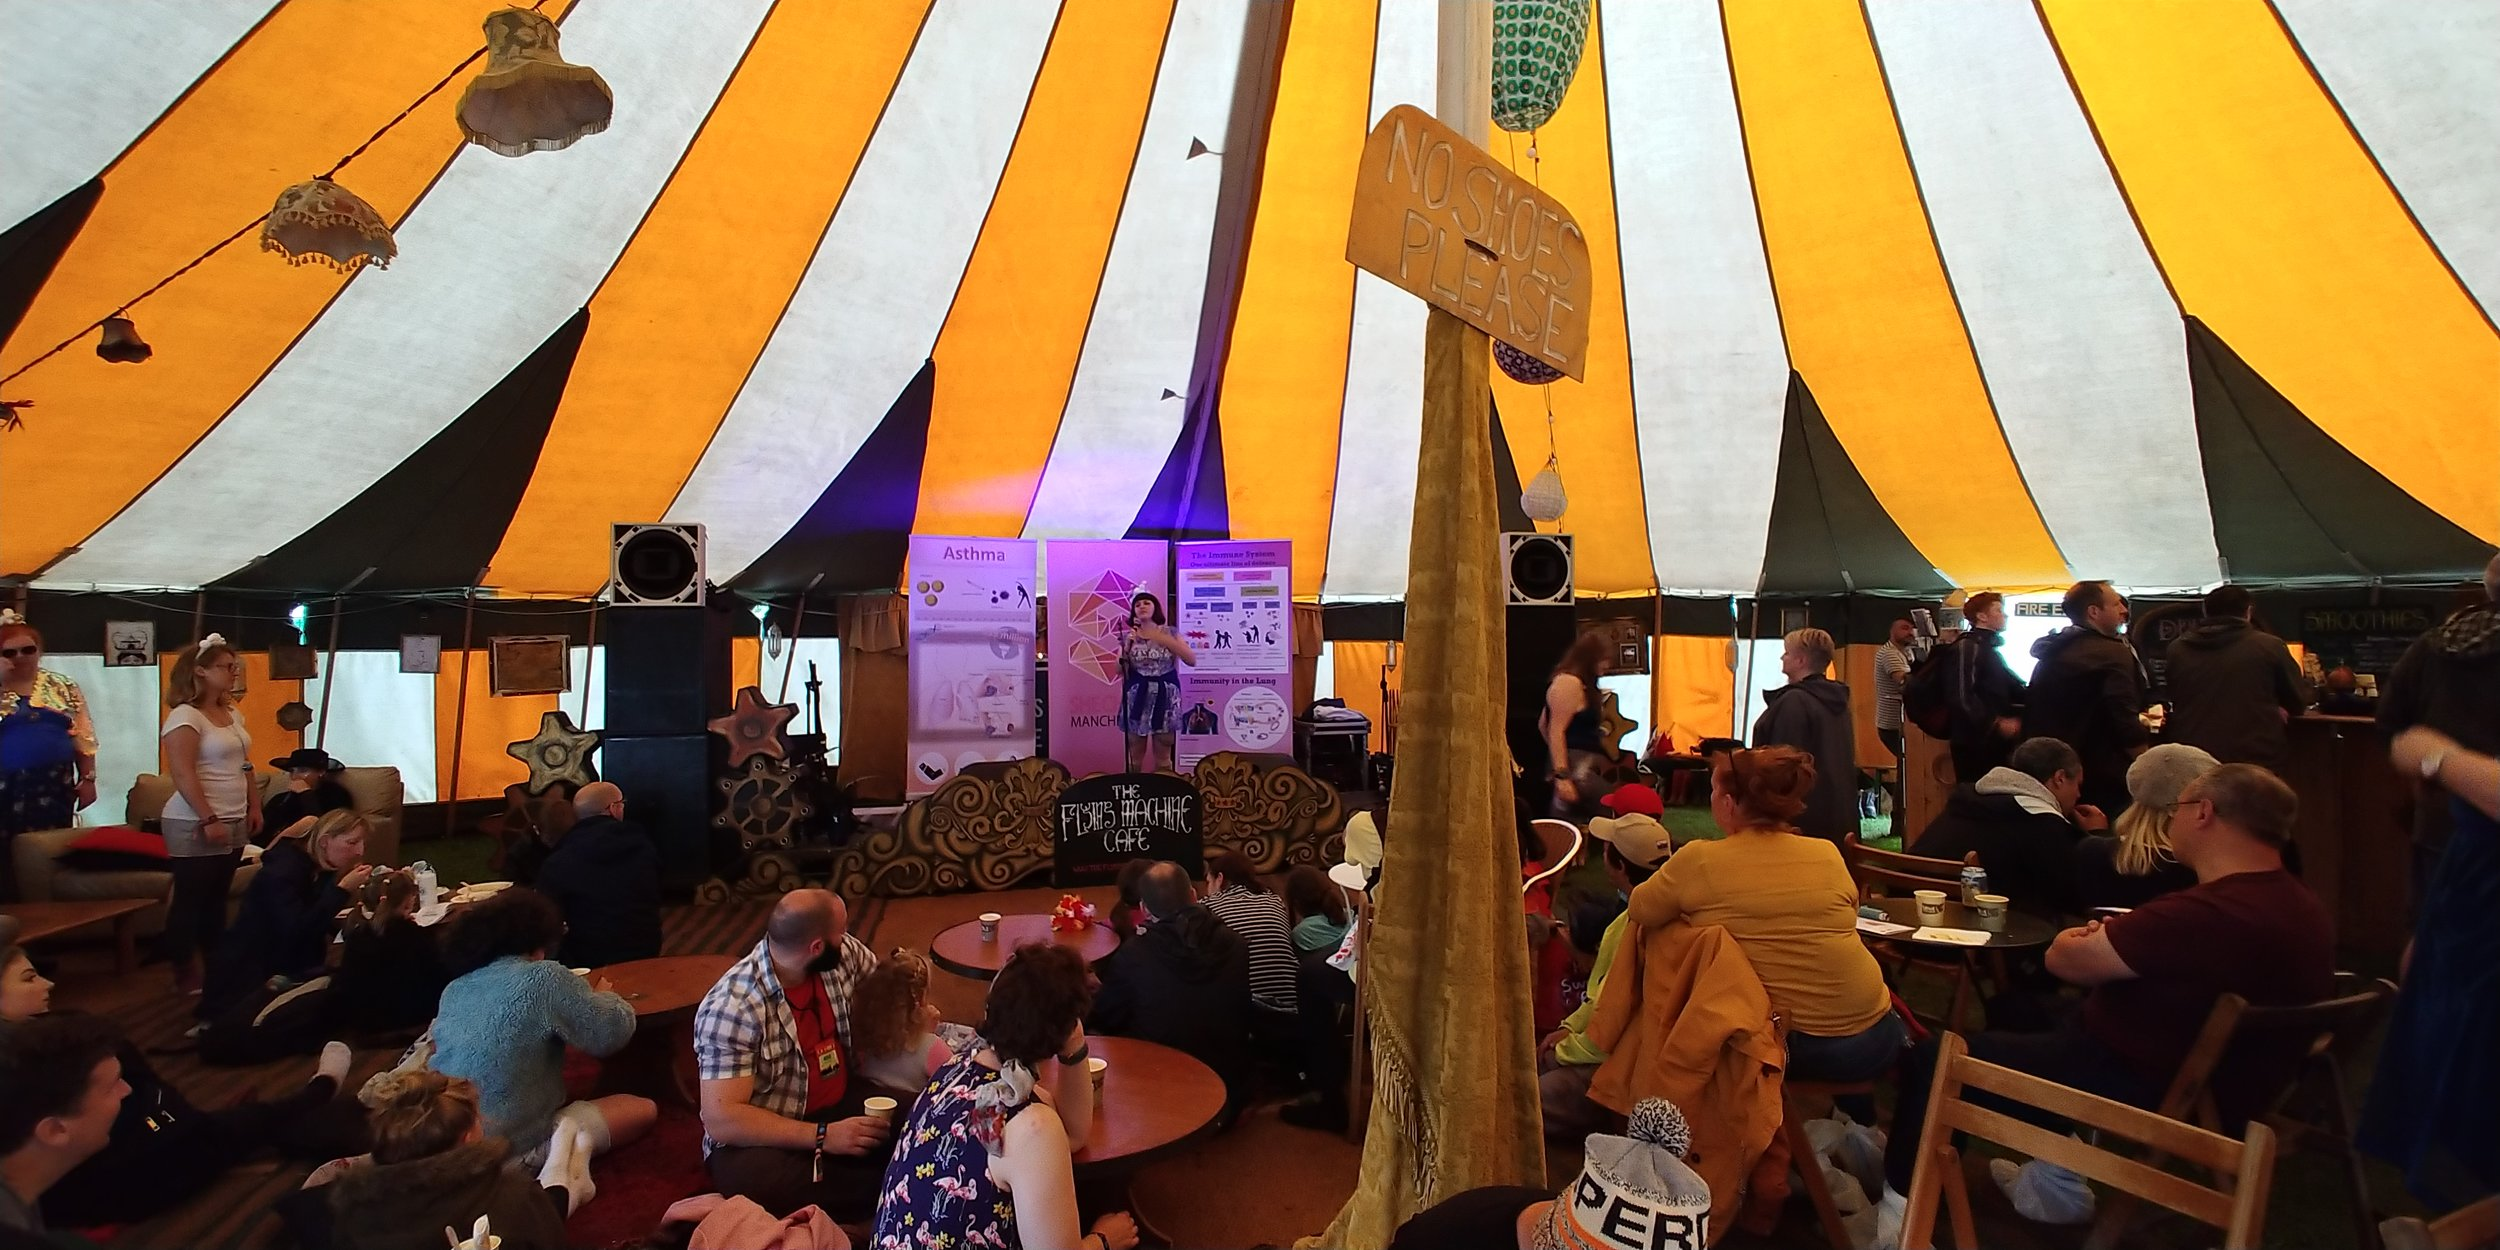 Acapalla singing on the Notes stage. I loved the decor of this tent.